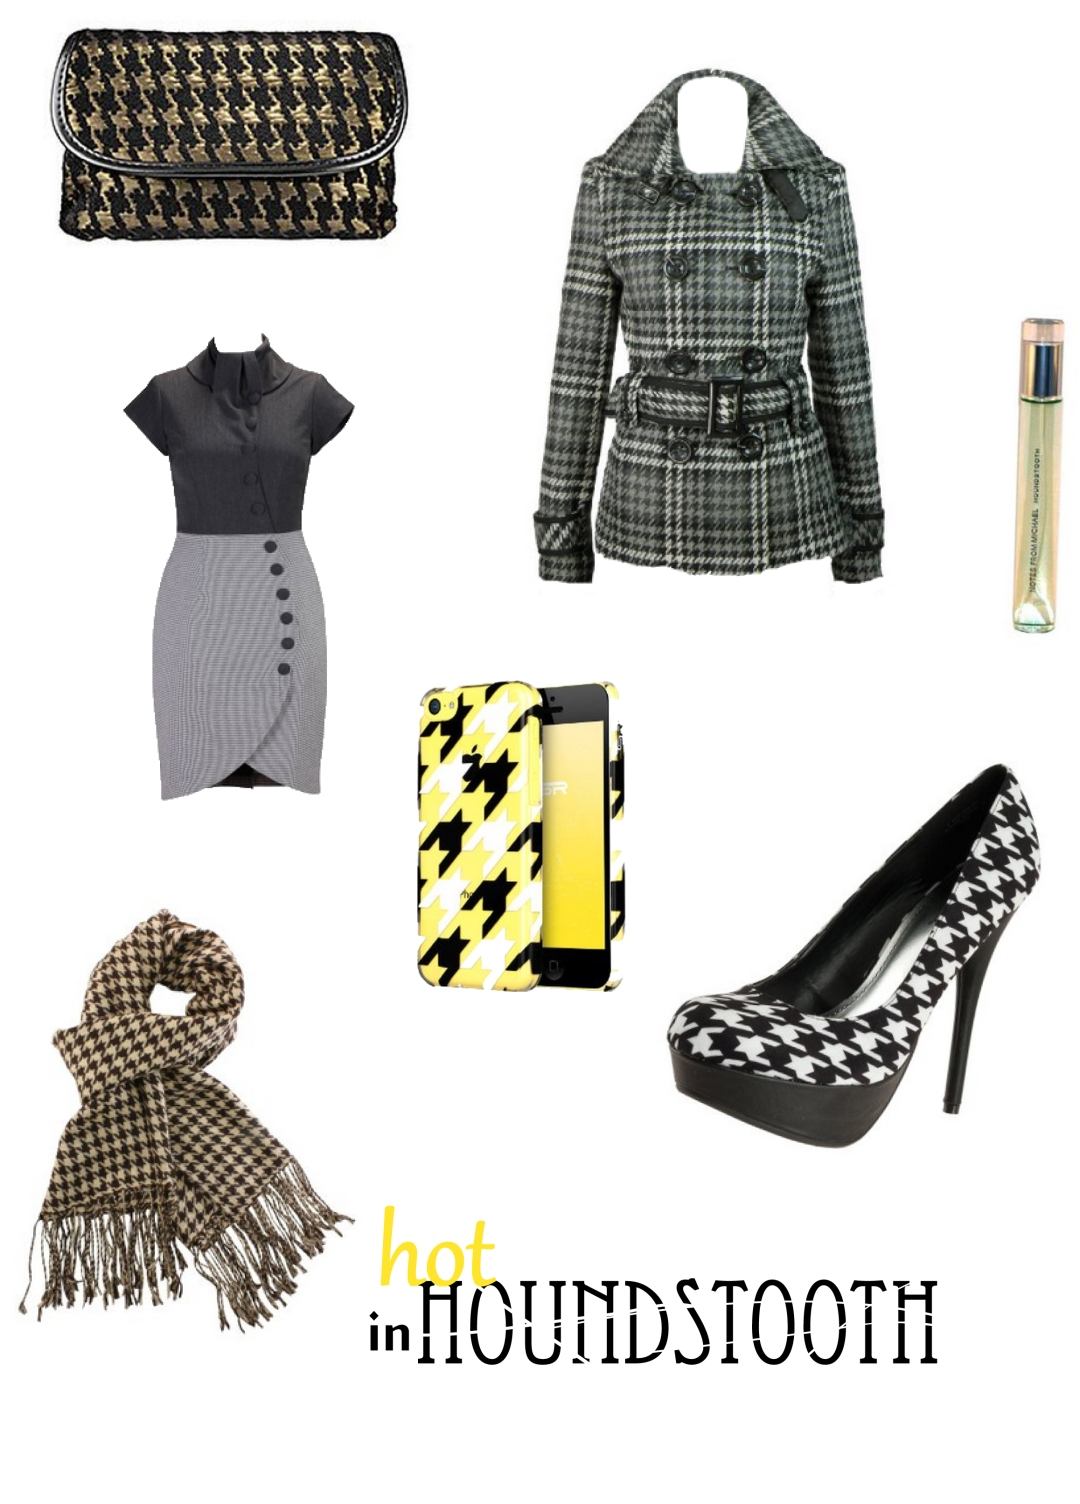 houndstooth heaven